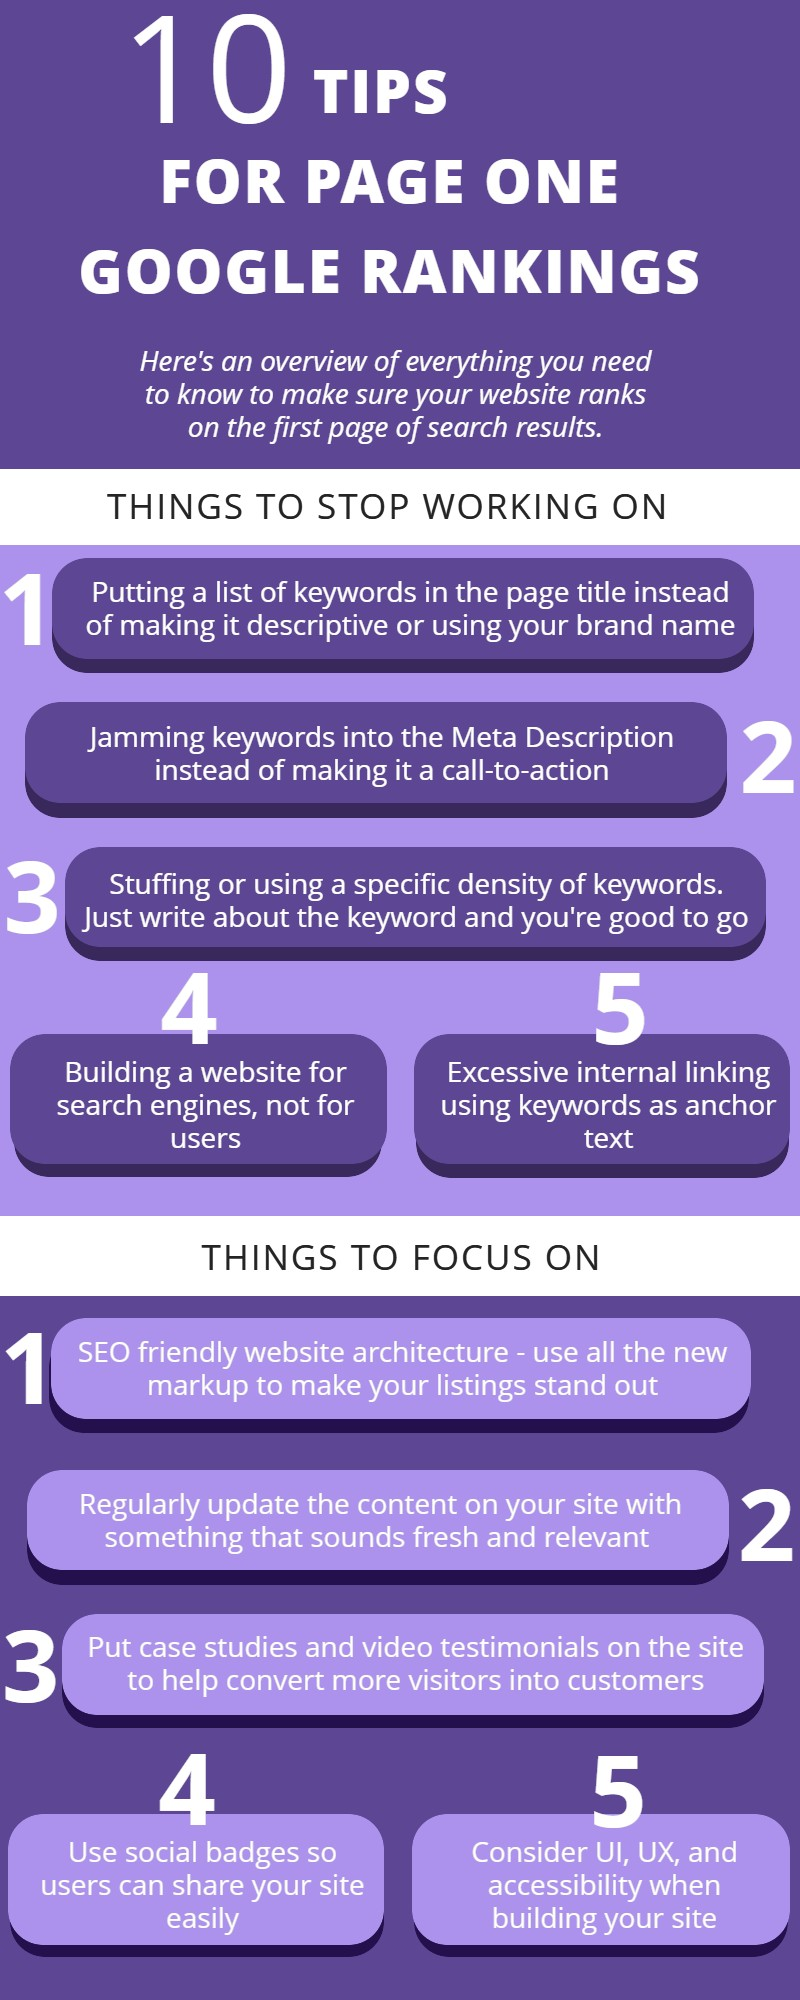 Tips to rank on page one google rankings